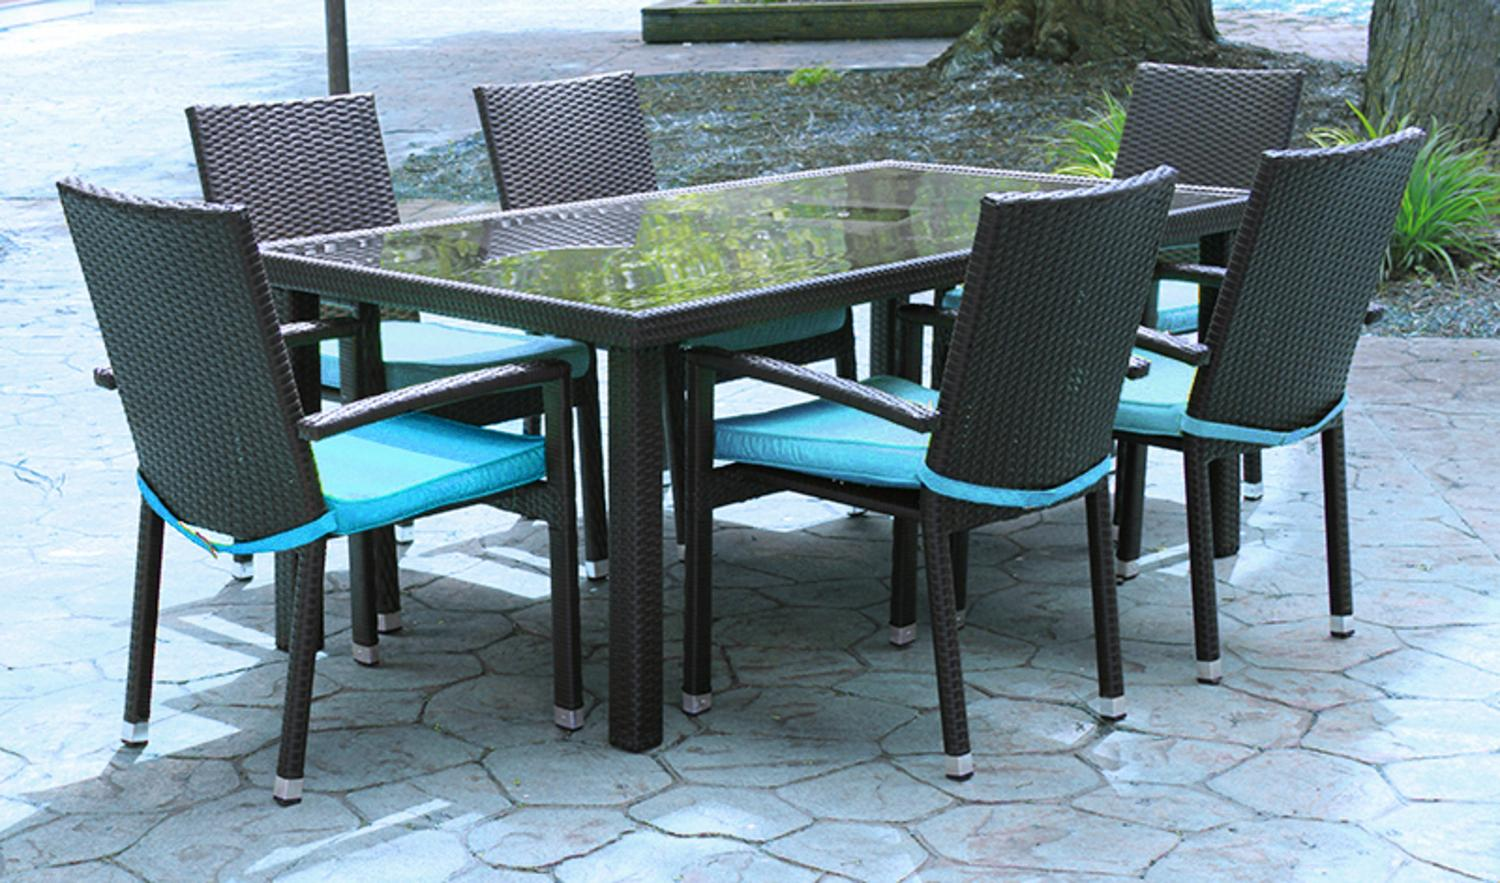 7-Piece Black Resin Wicker Outdoor Furniture Patio Dining Room Set Blue Cushions by CC Outdoor Living